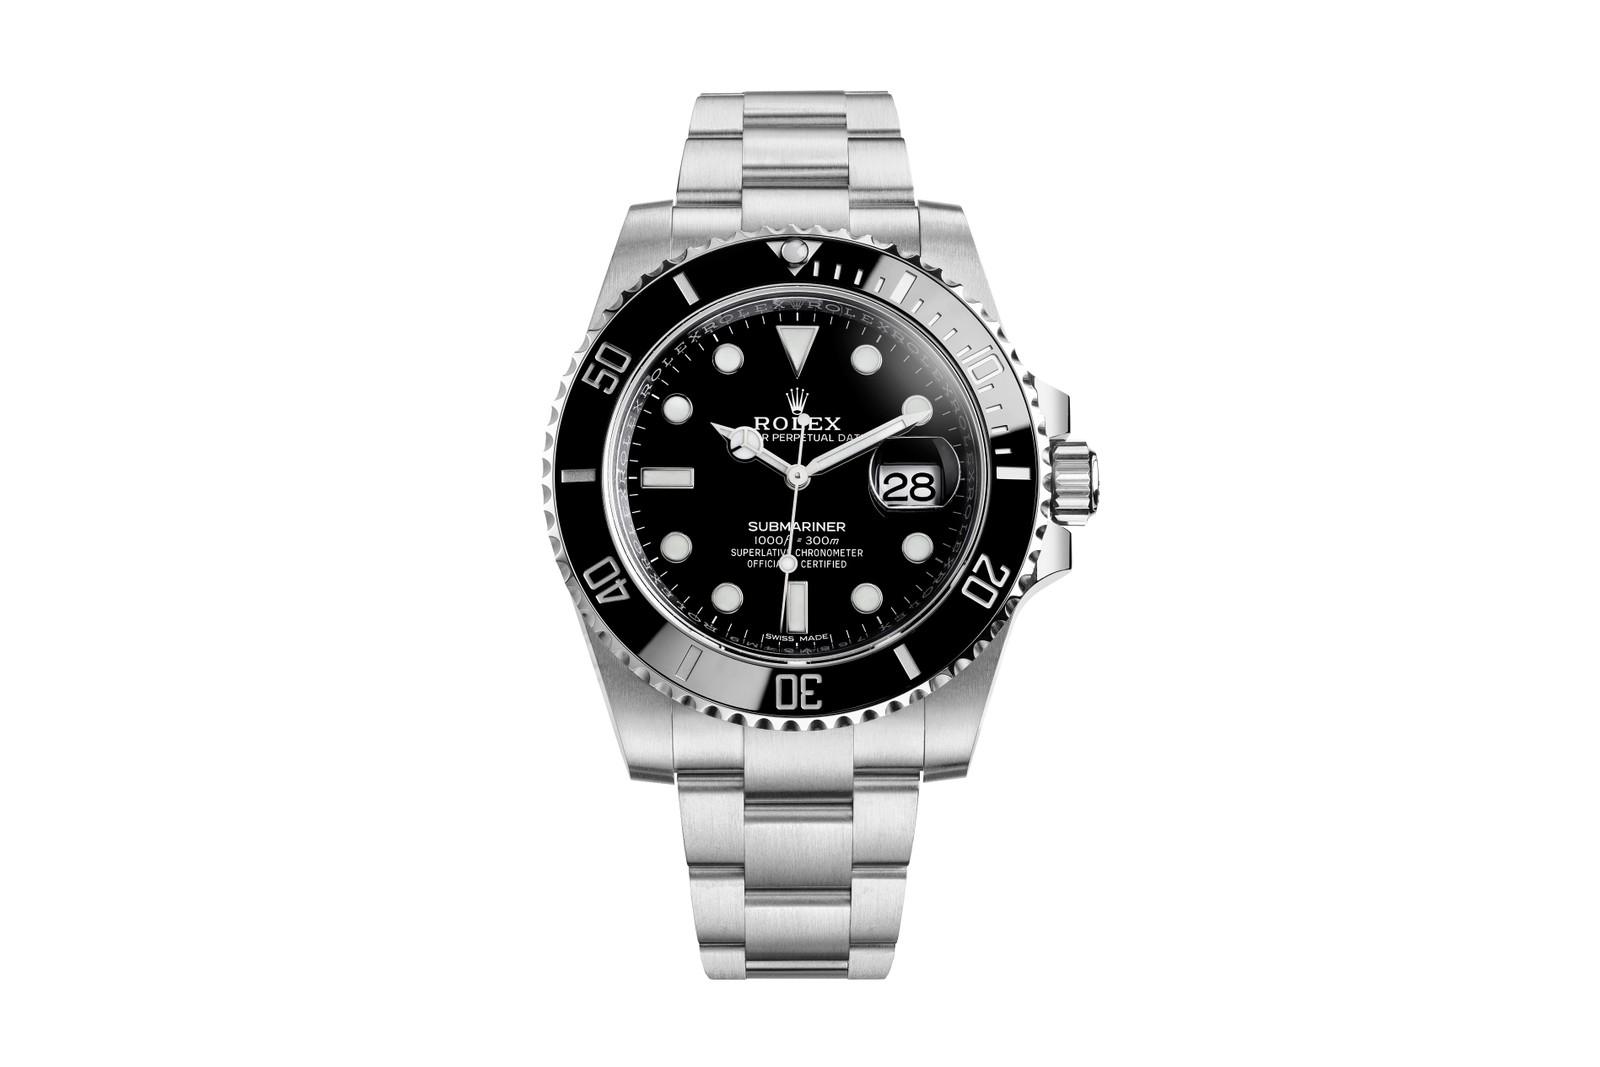 HYPEBEAST Looks at The Most Iconic Watches Starting With the Rolex Submariner